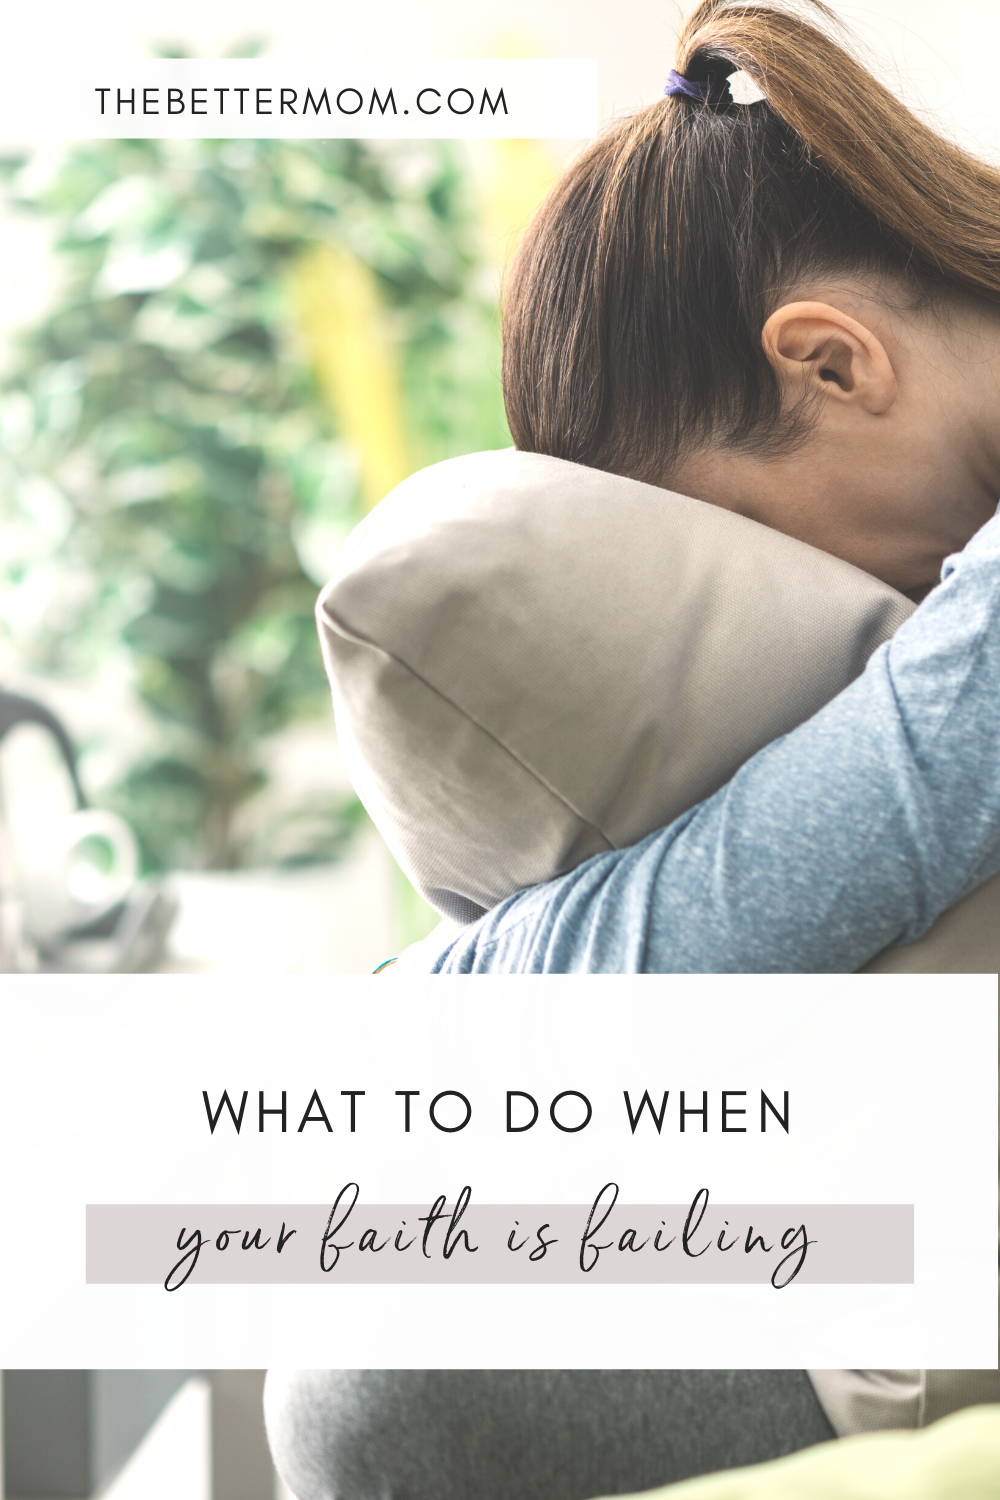 Are you struggling to depend on God right now? Sometimes we can become disoriented by life's circumstances and lose faith that God really cares. If this is you, don't give up. Here is what we can do when our faith is failing...